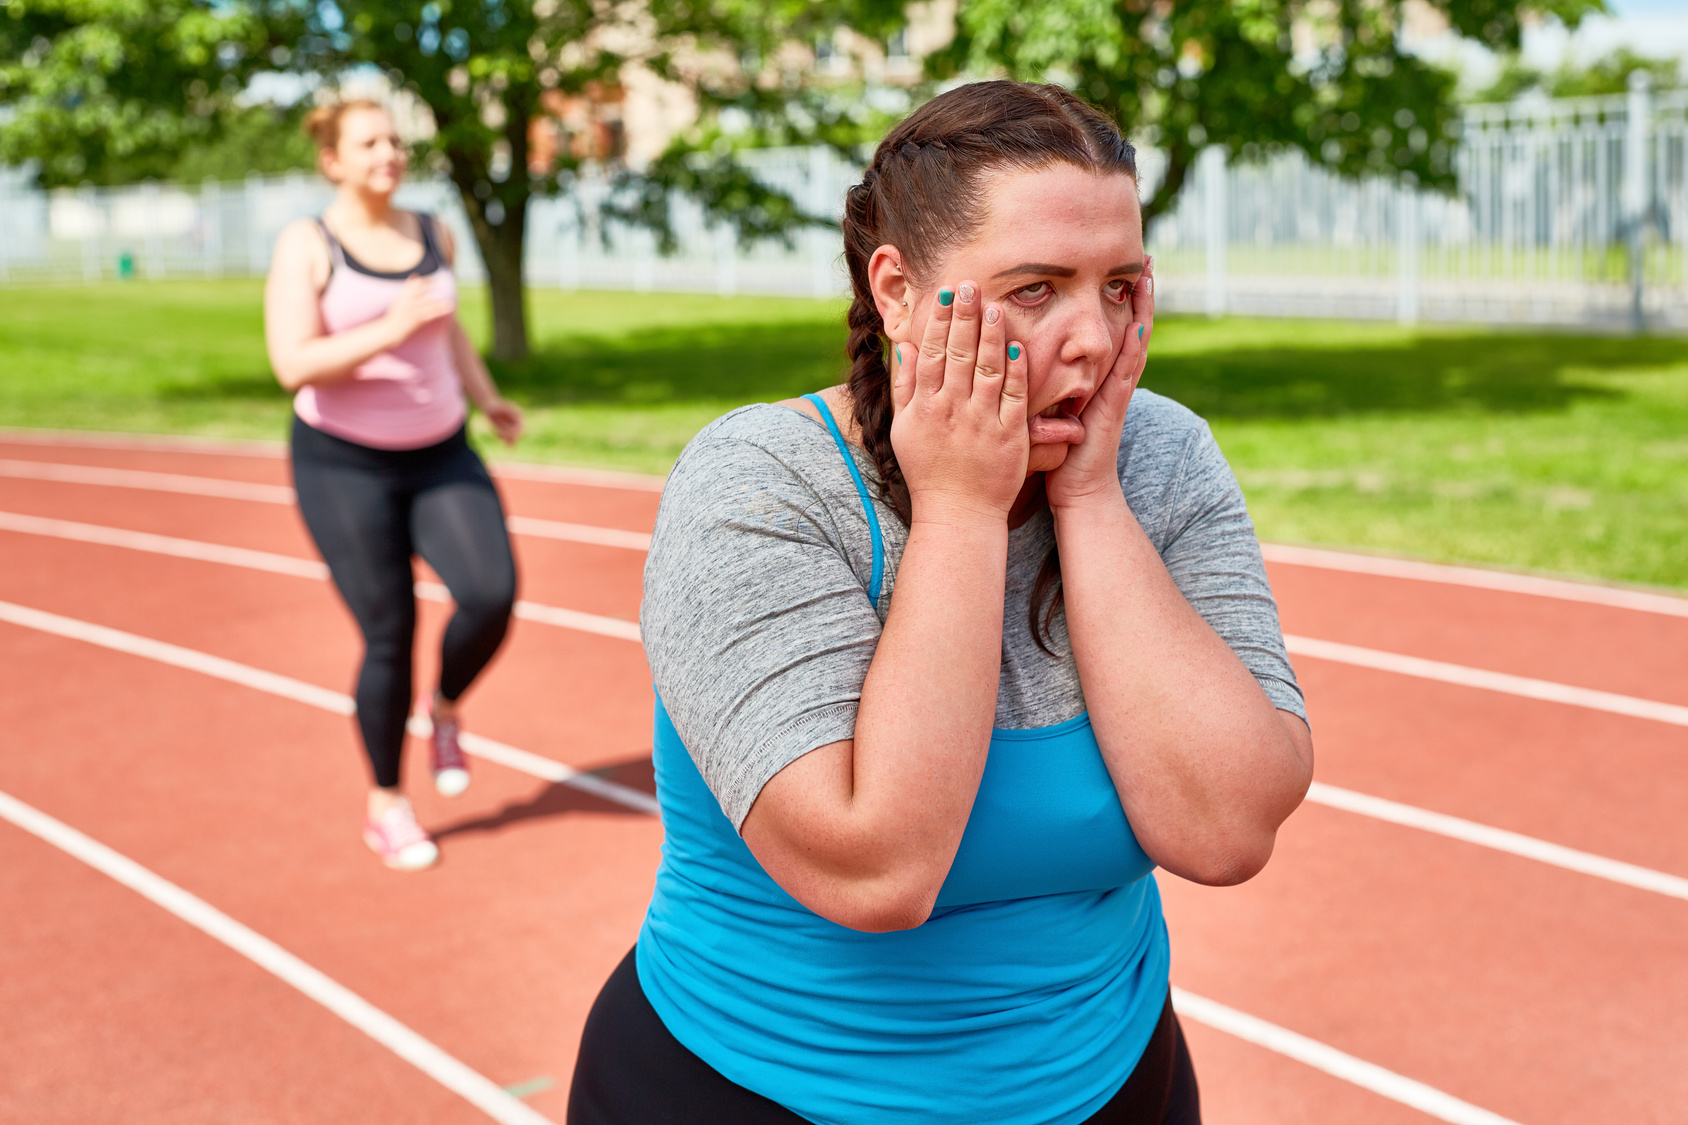 woman training for race pace